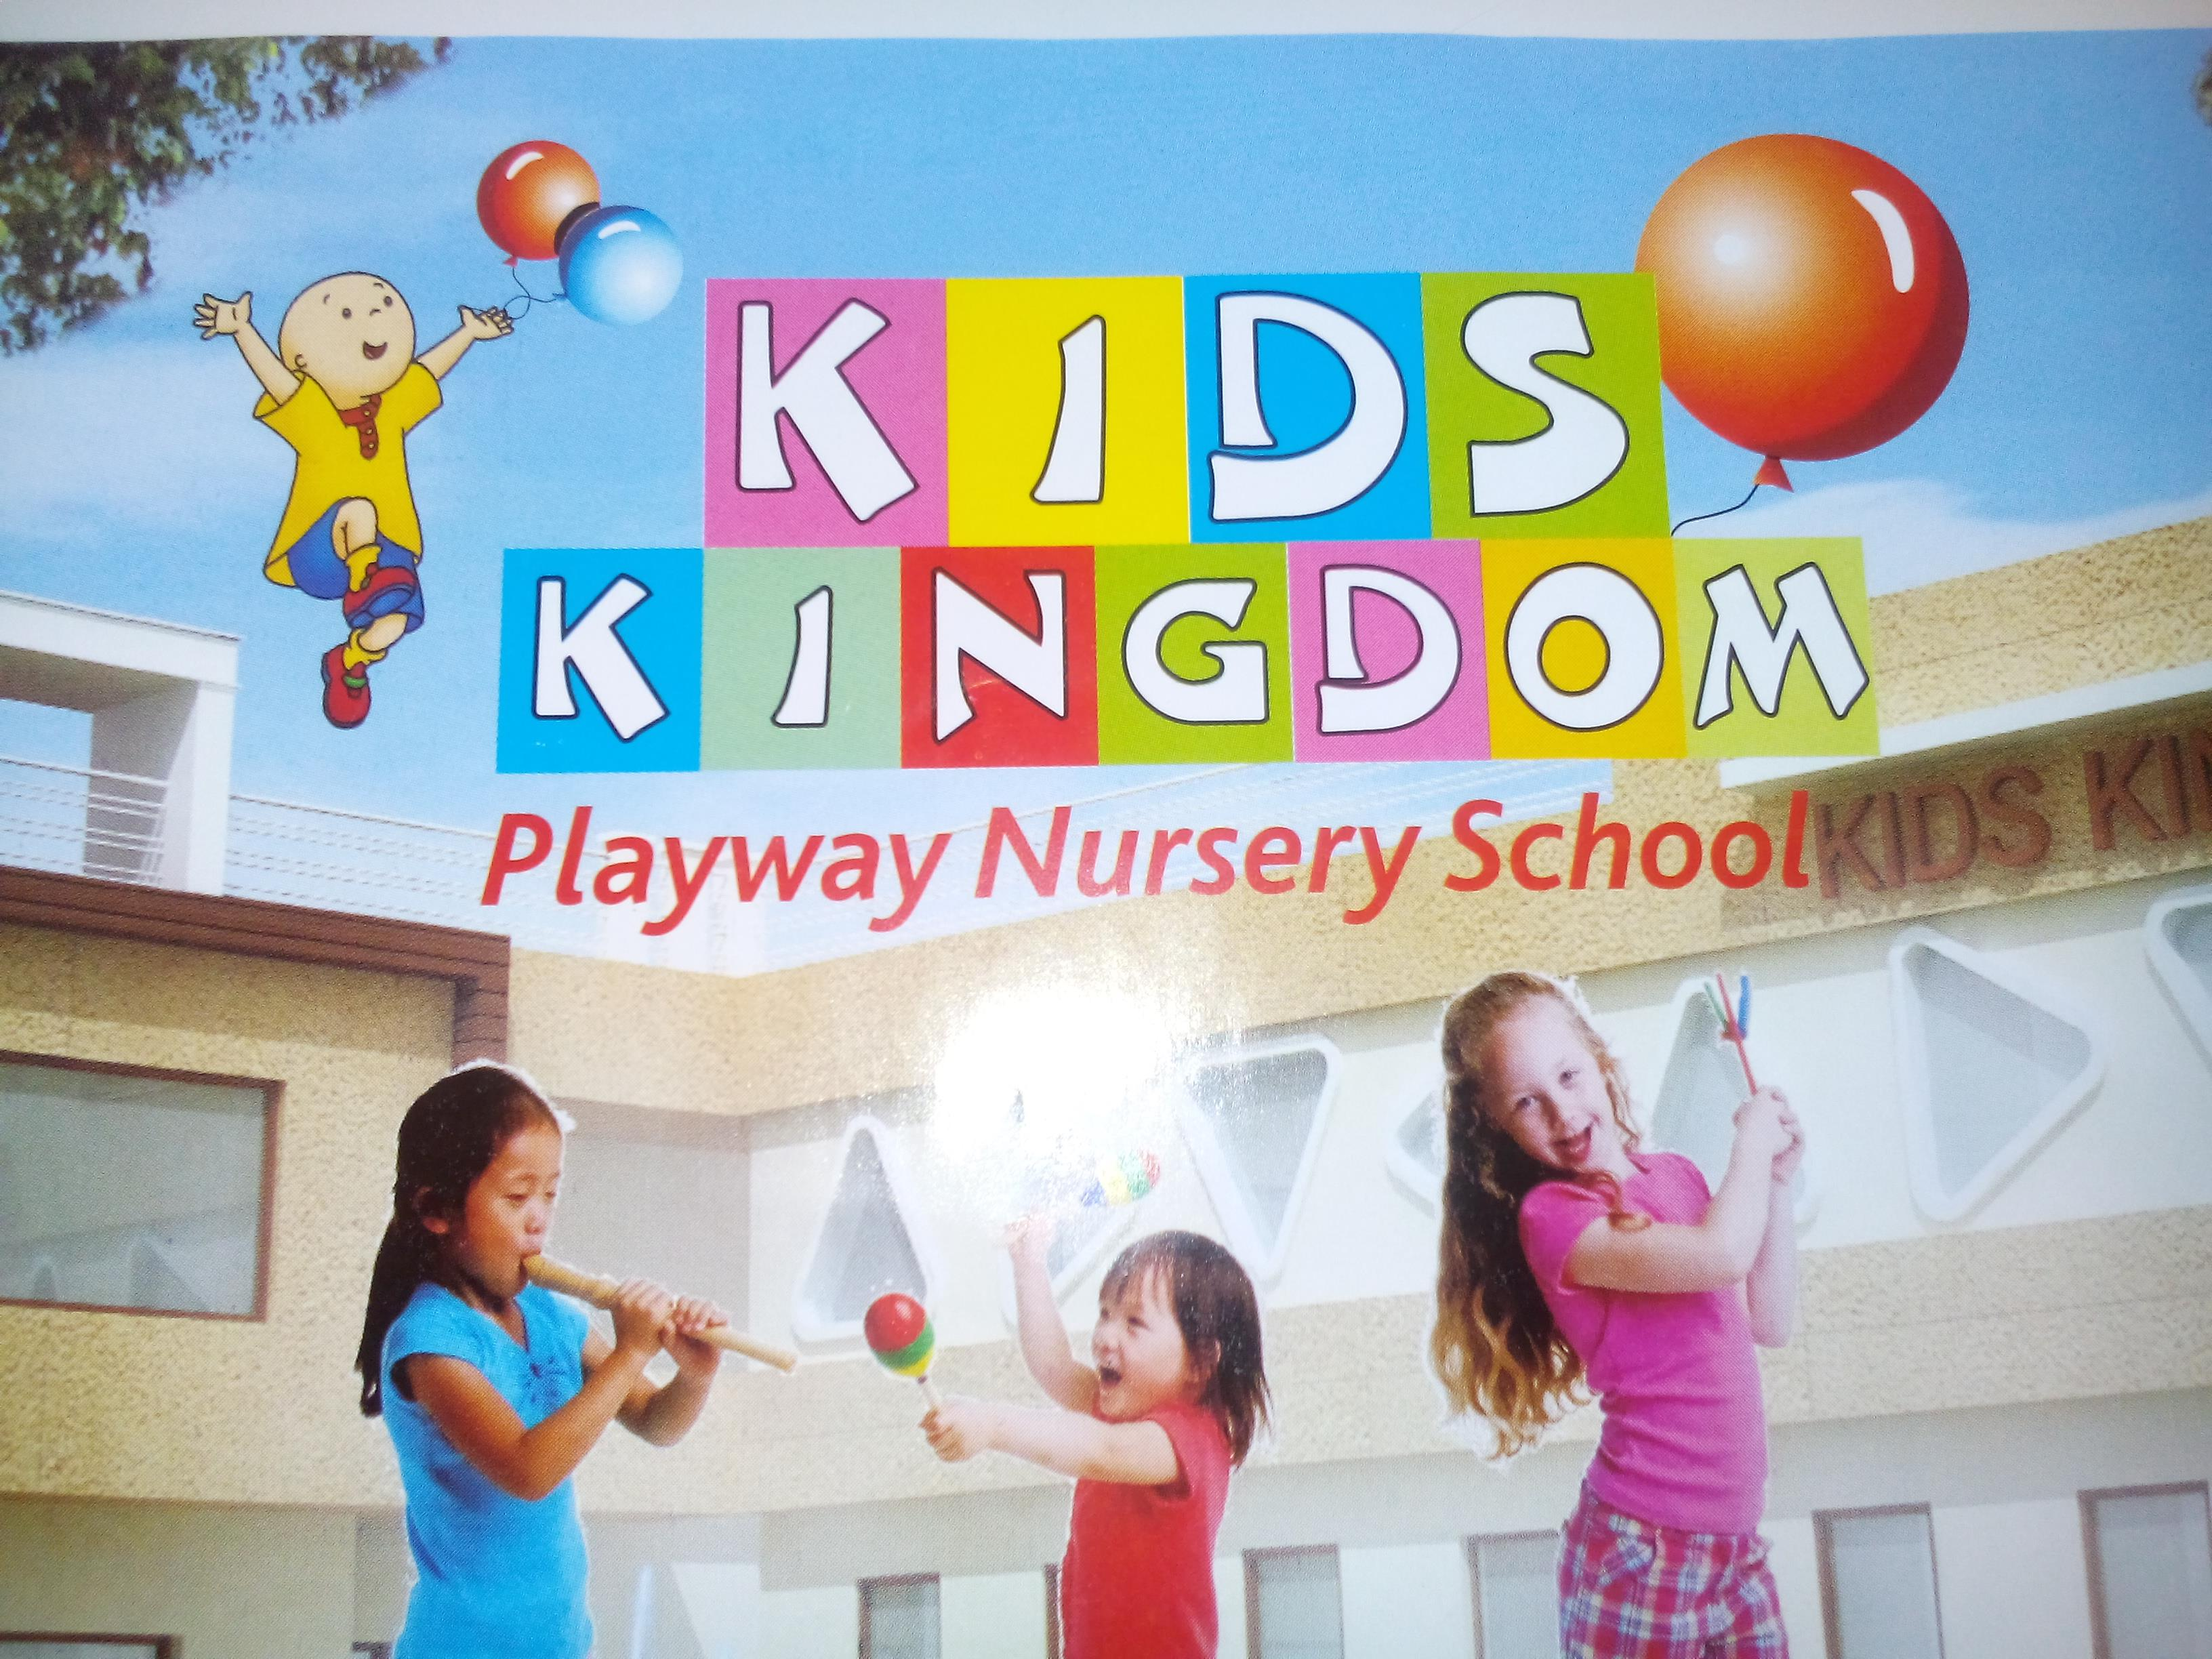 Kids Kingdom Uday Vihar Delhi Reviews Kids Kingdom Uday Vihar